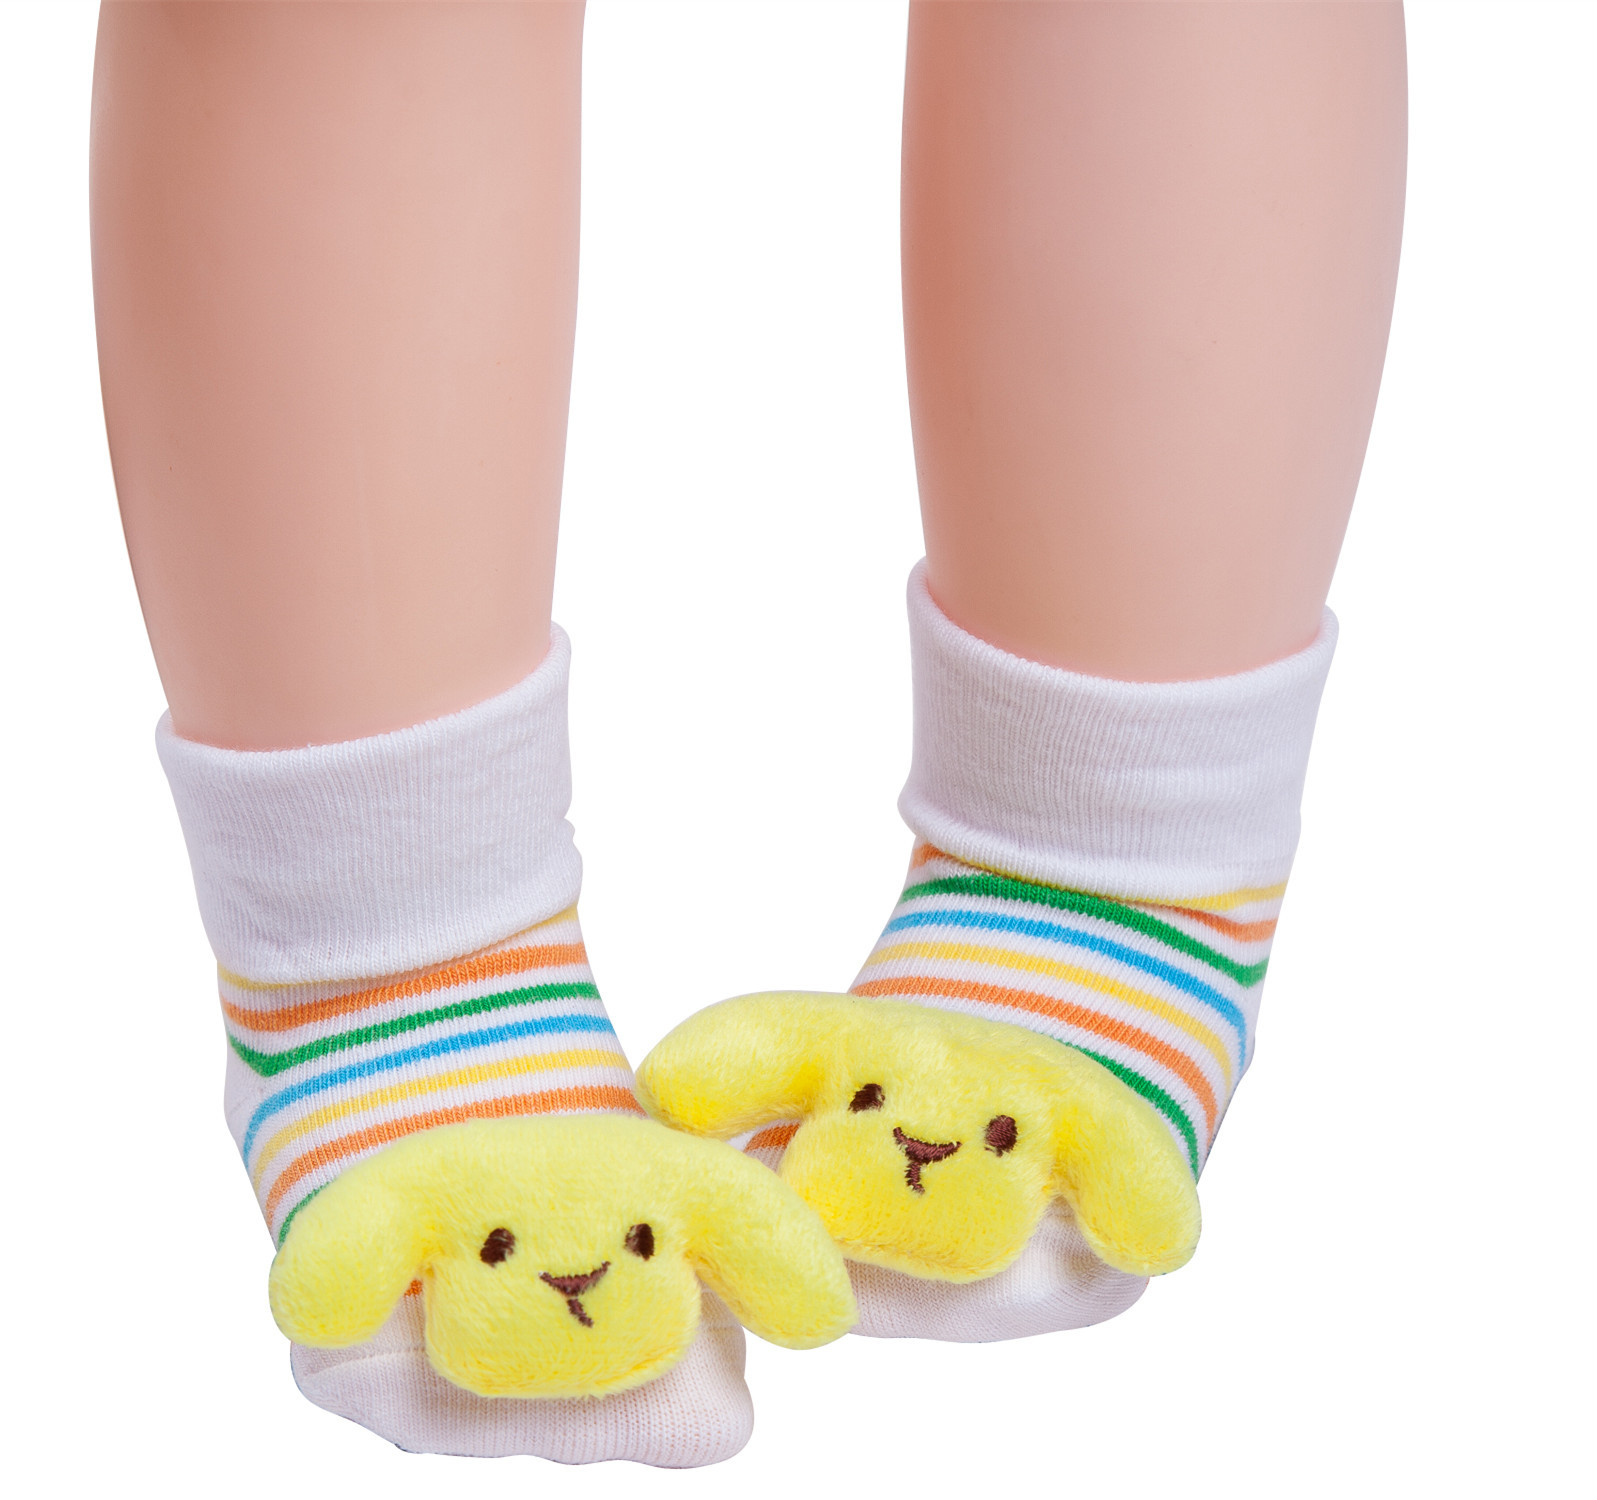 1 Pair Newborn Baby Socks with Rubber Soles Cotton Toddler Socks